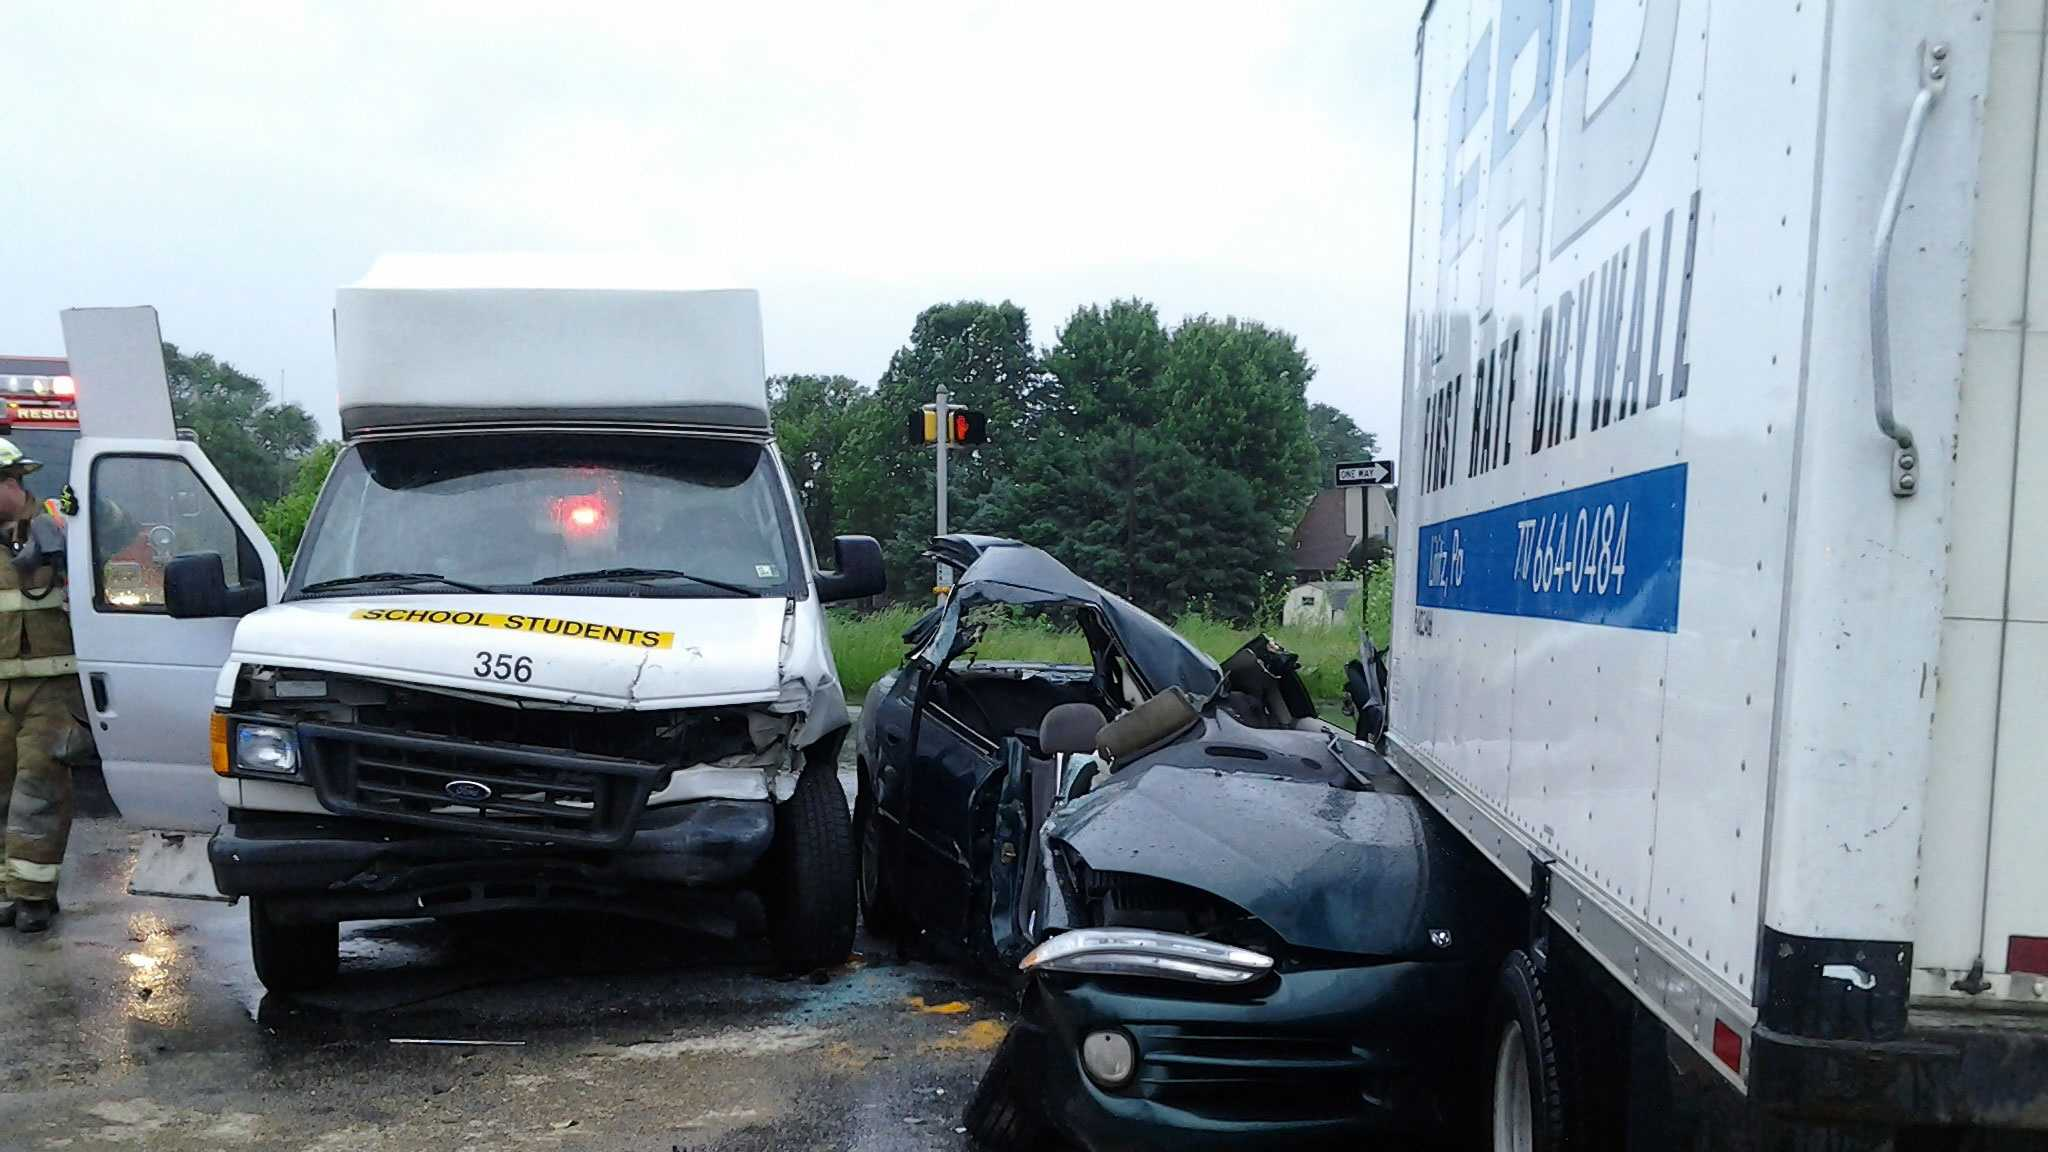 A woman in the car and the truck driver were taken to a hospital.